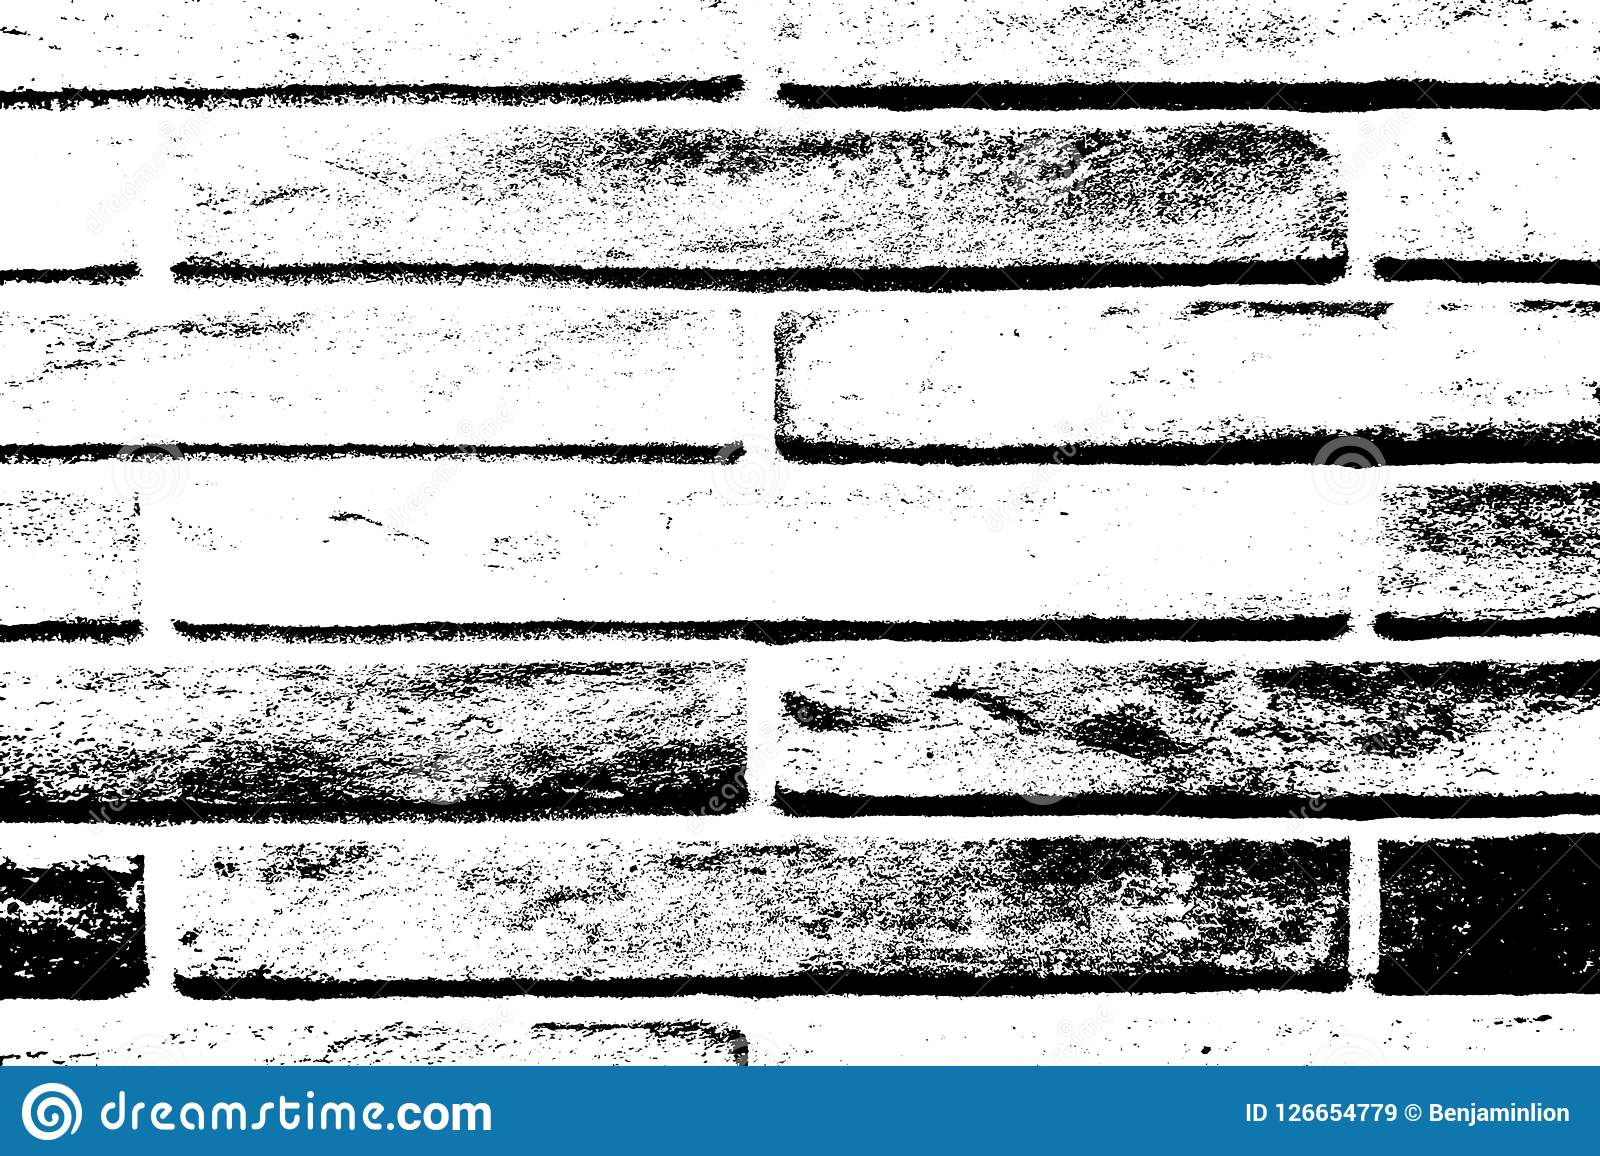 Brickwall Overlay Texture. Distress brick wall masonry overlay texture. Grunge urban dirty background. Aging stone template cover. EPS10 vector Vector Illustration